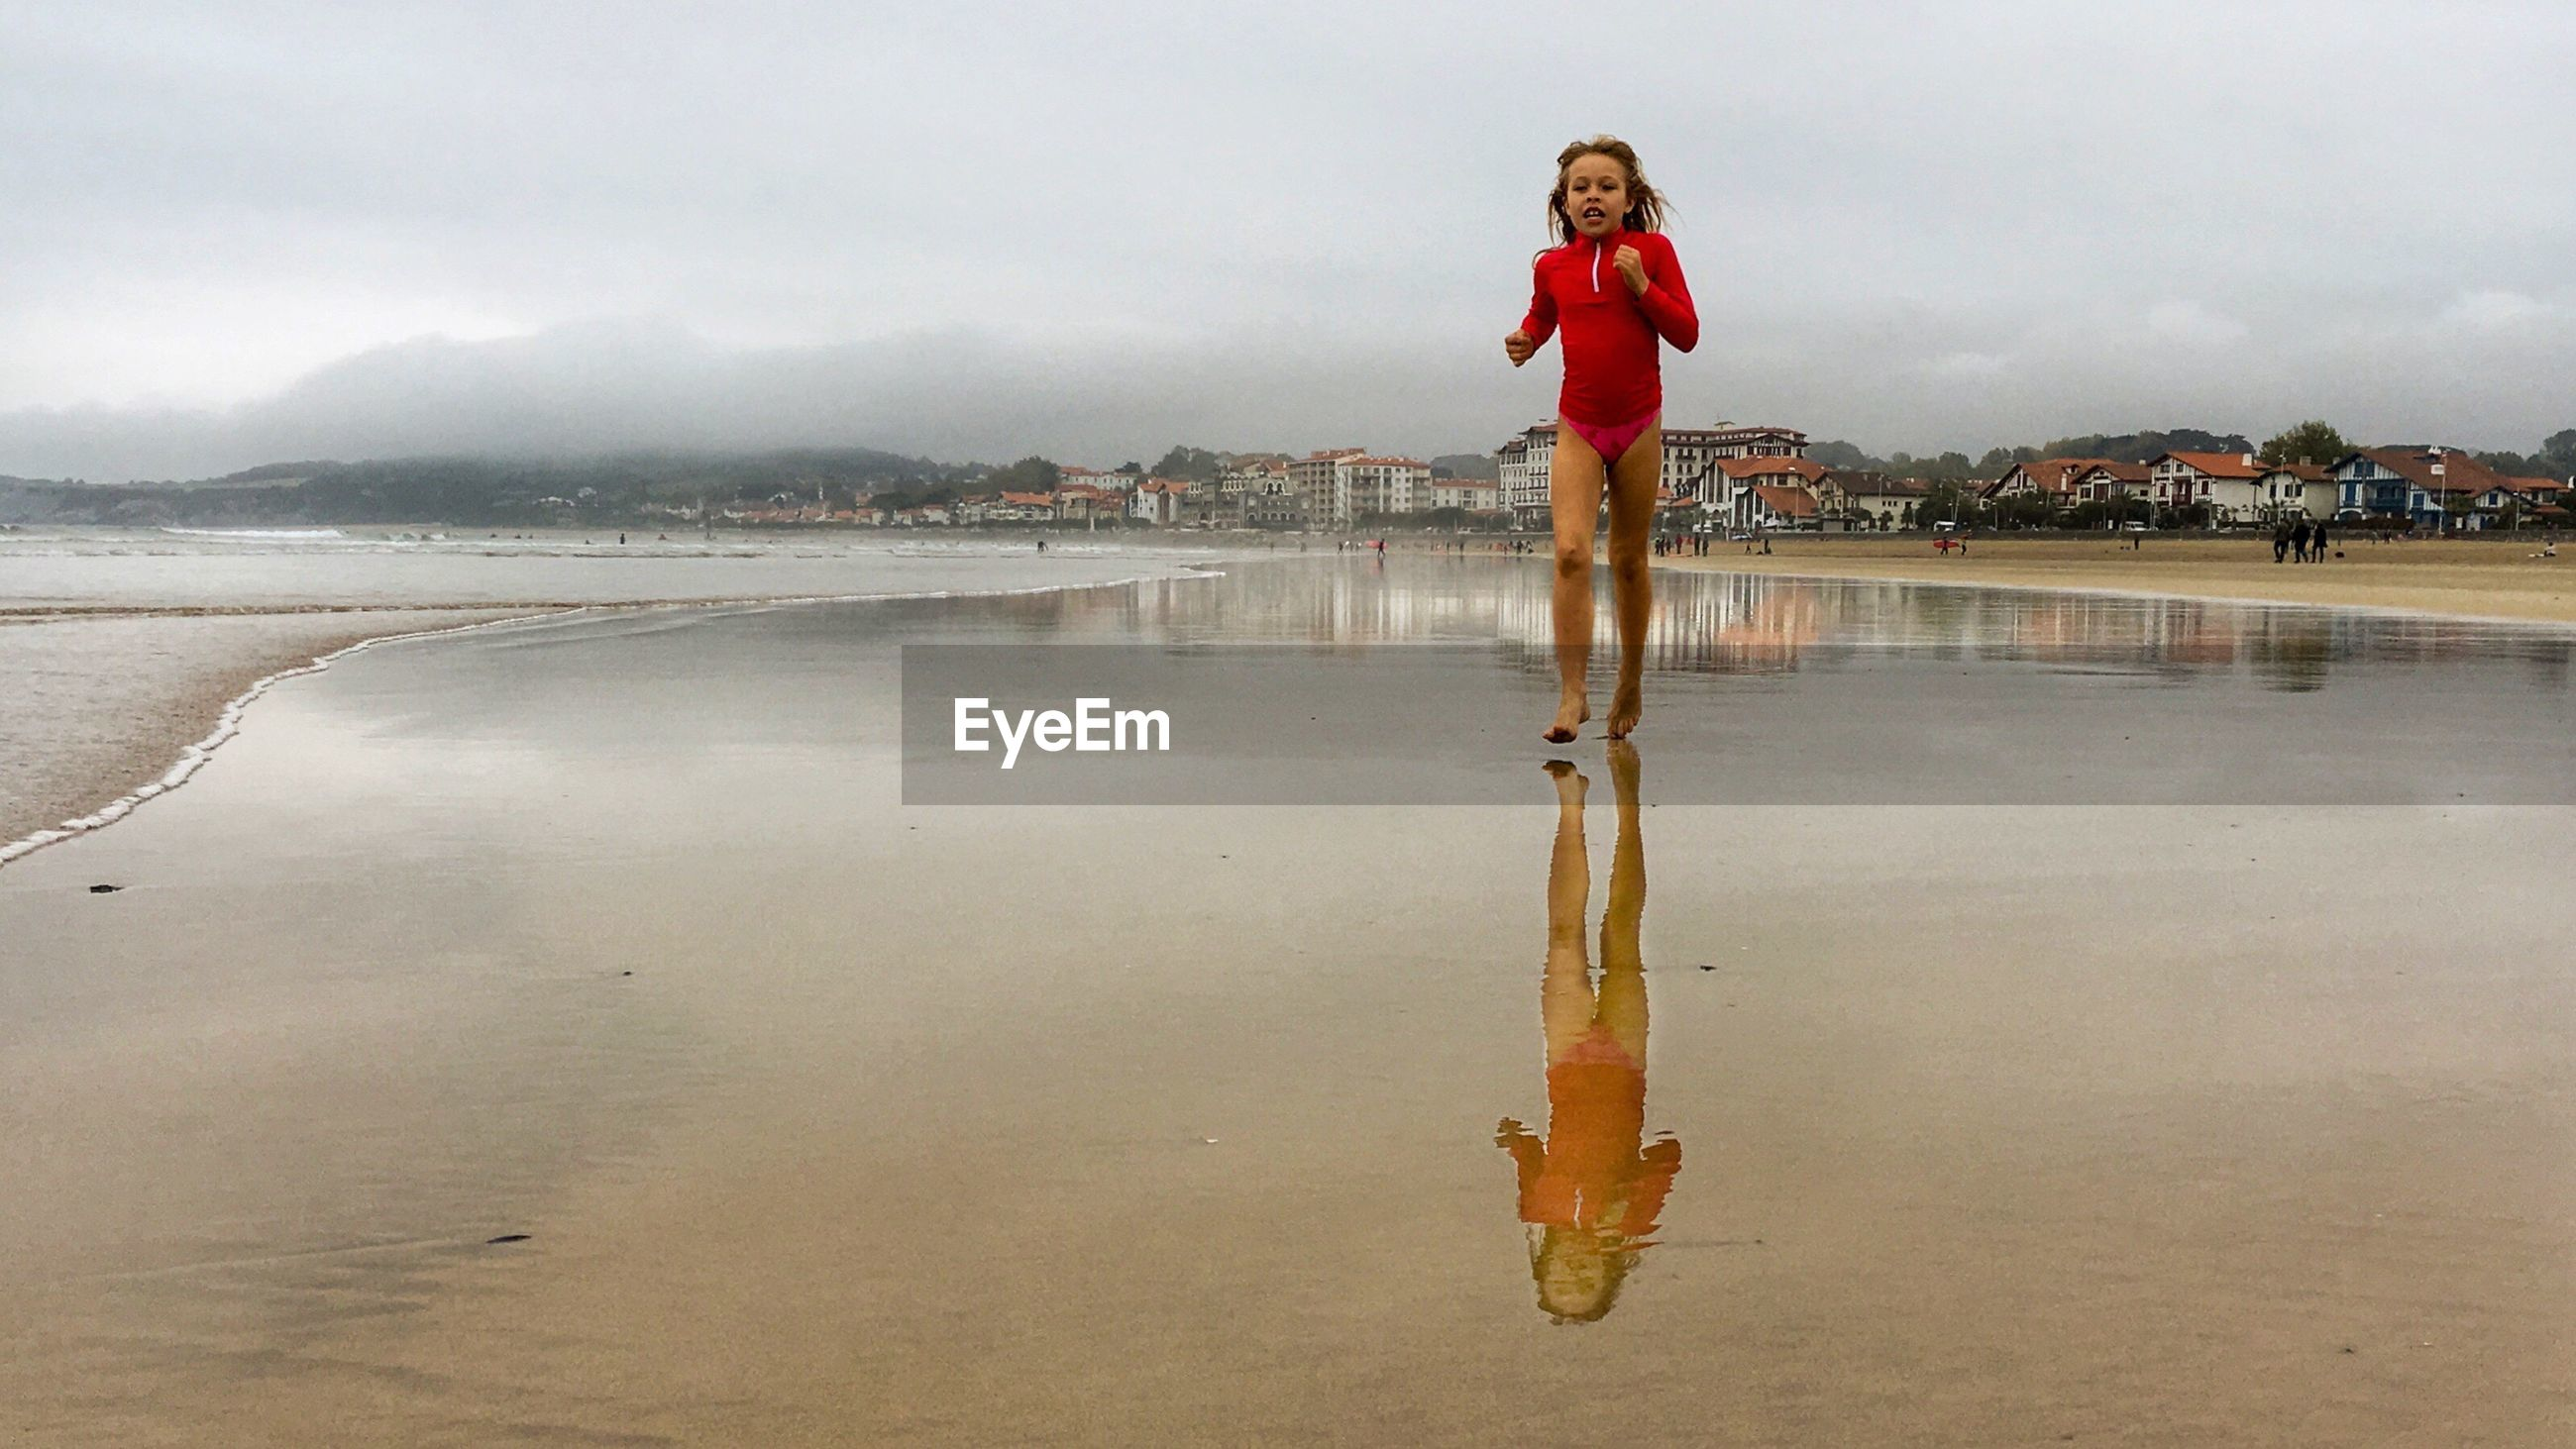 Girl running on shore at beach against sky